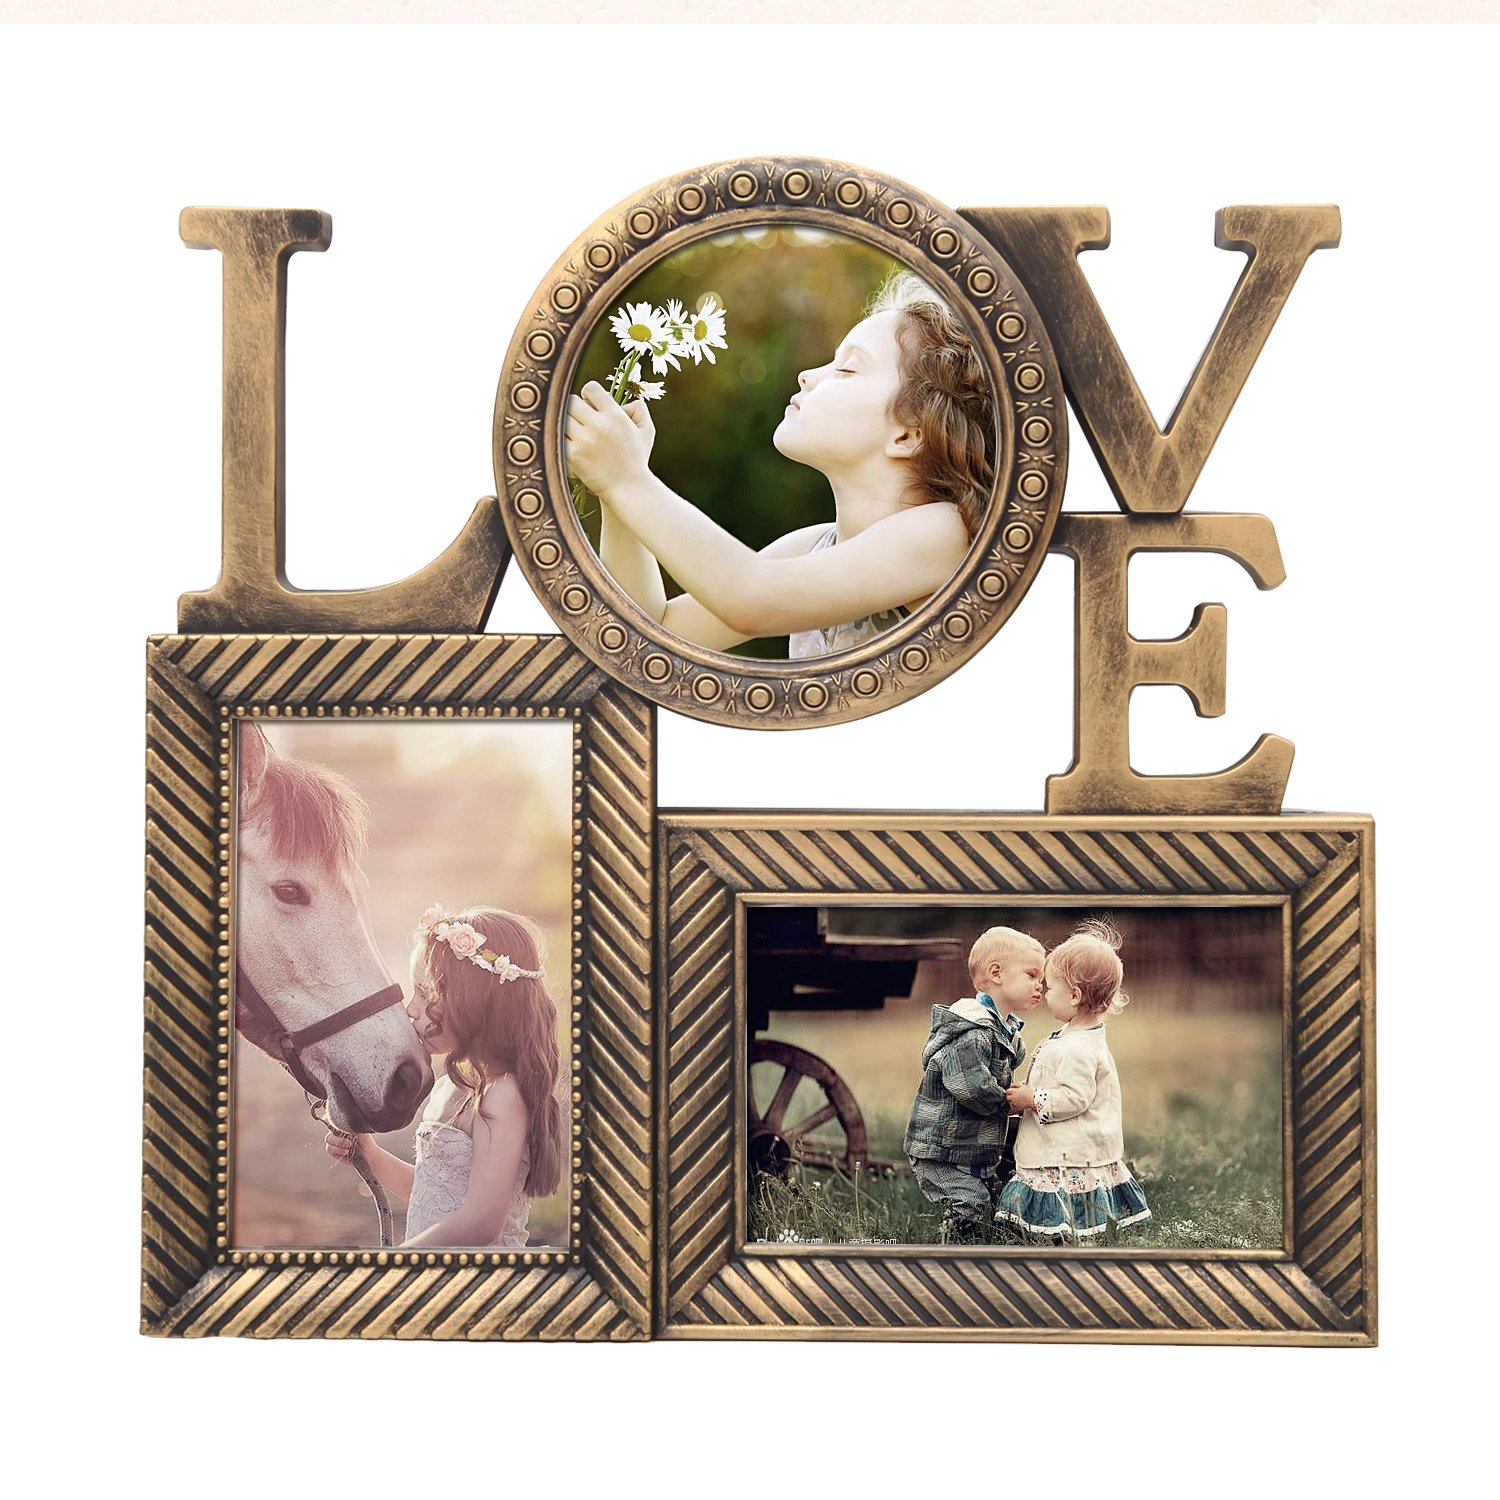 Deco De Ville 3 Opening LOVE Theme Plastic Decorative Antique Golden Puzzle Collage Picture Photo Frame, Wall Hanging, Gold